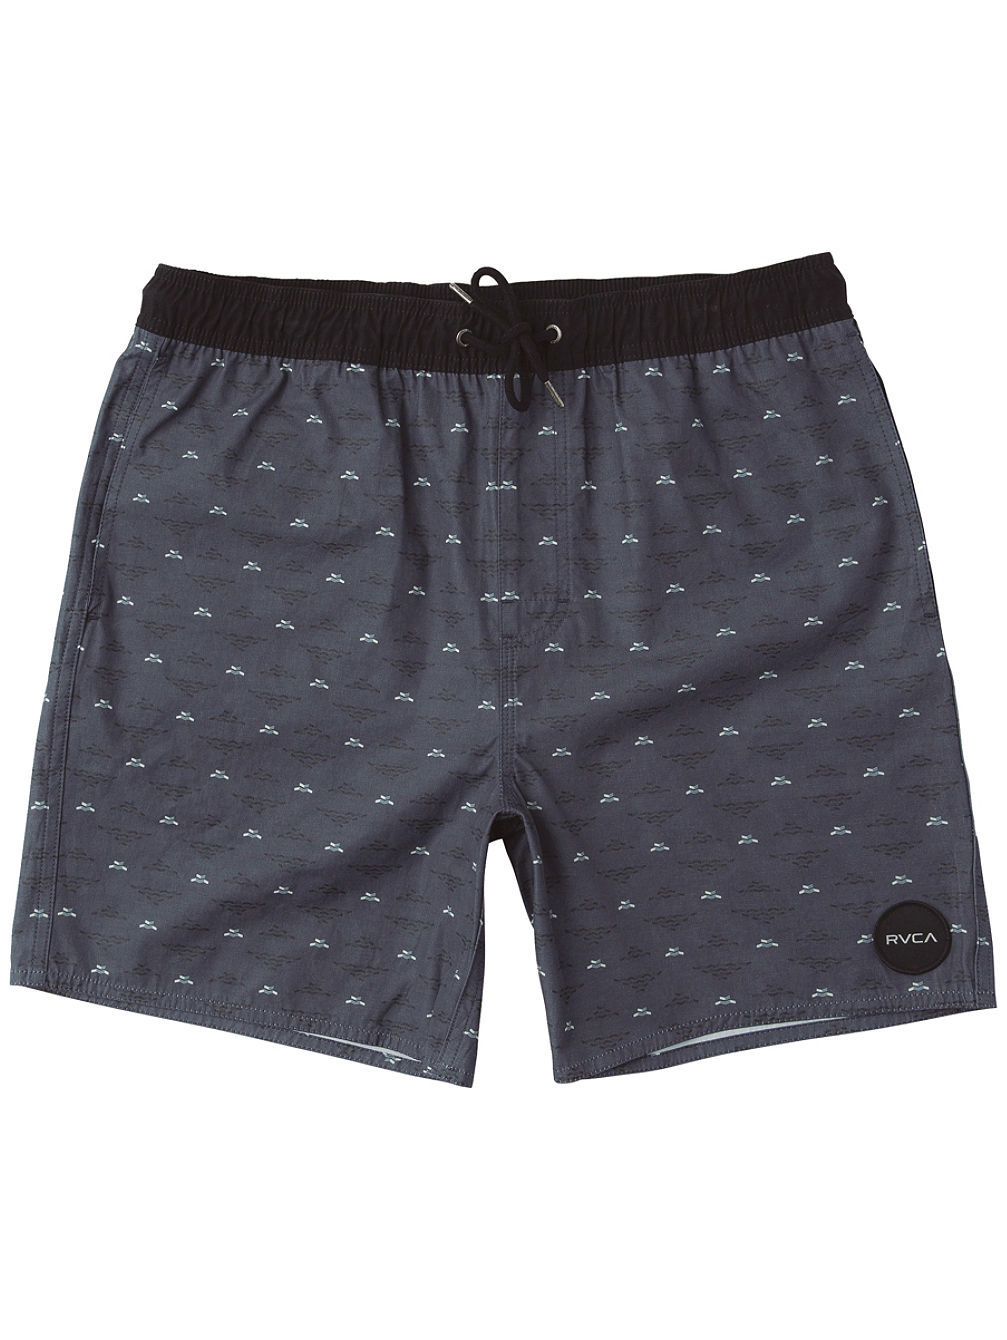 Crown Boardshorts